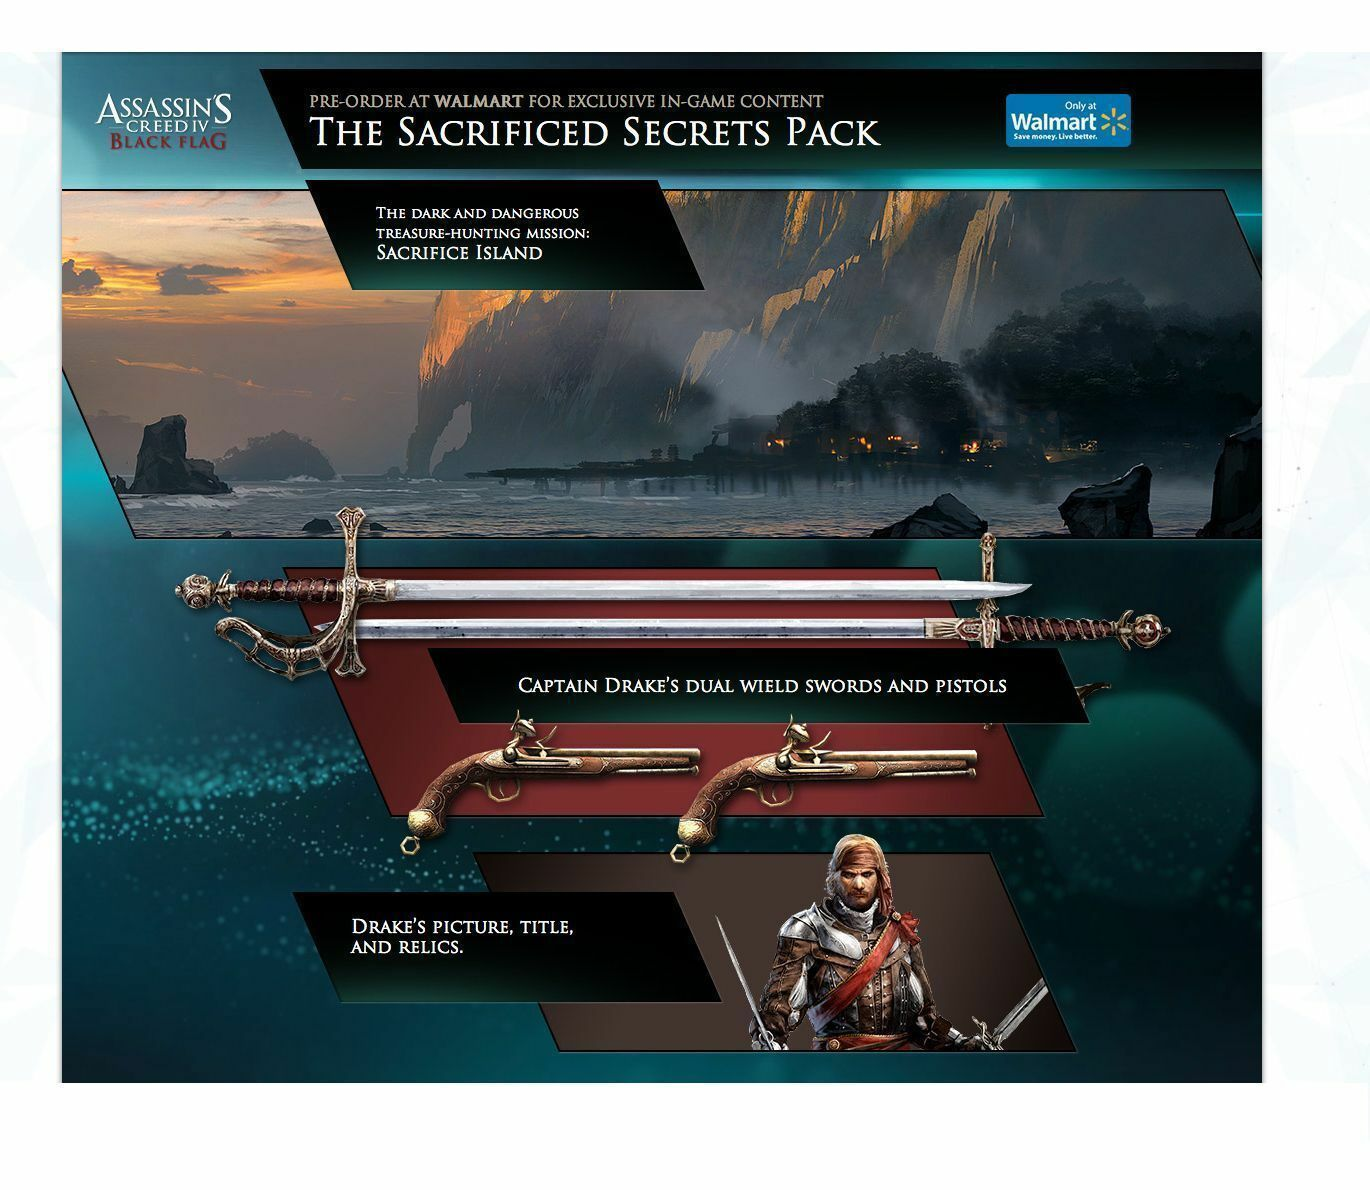 Details about Assassin's Creed IV: Black Flag - Sacrificed Secrets DLC Pack  [PlayStation 3]